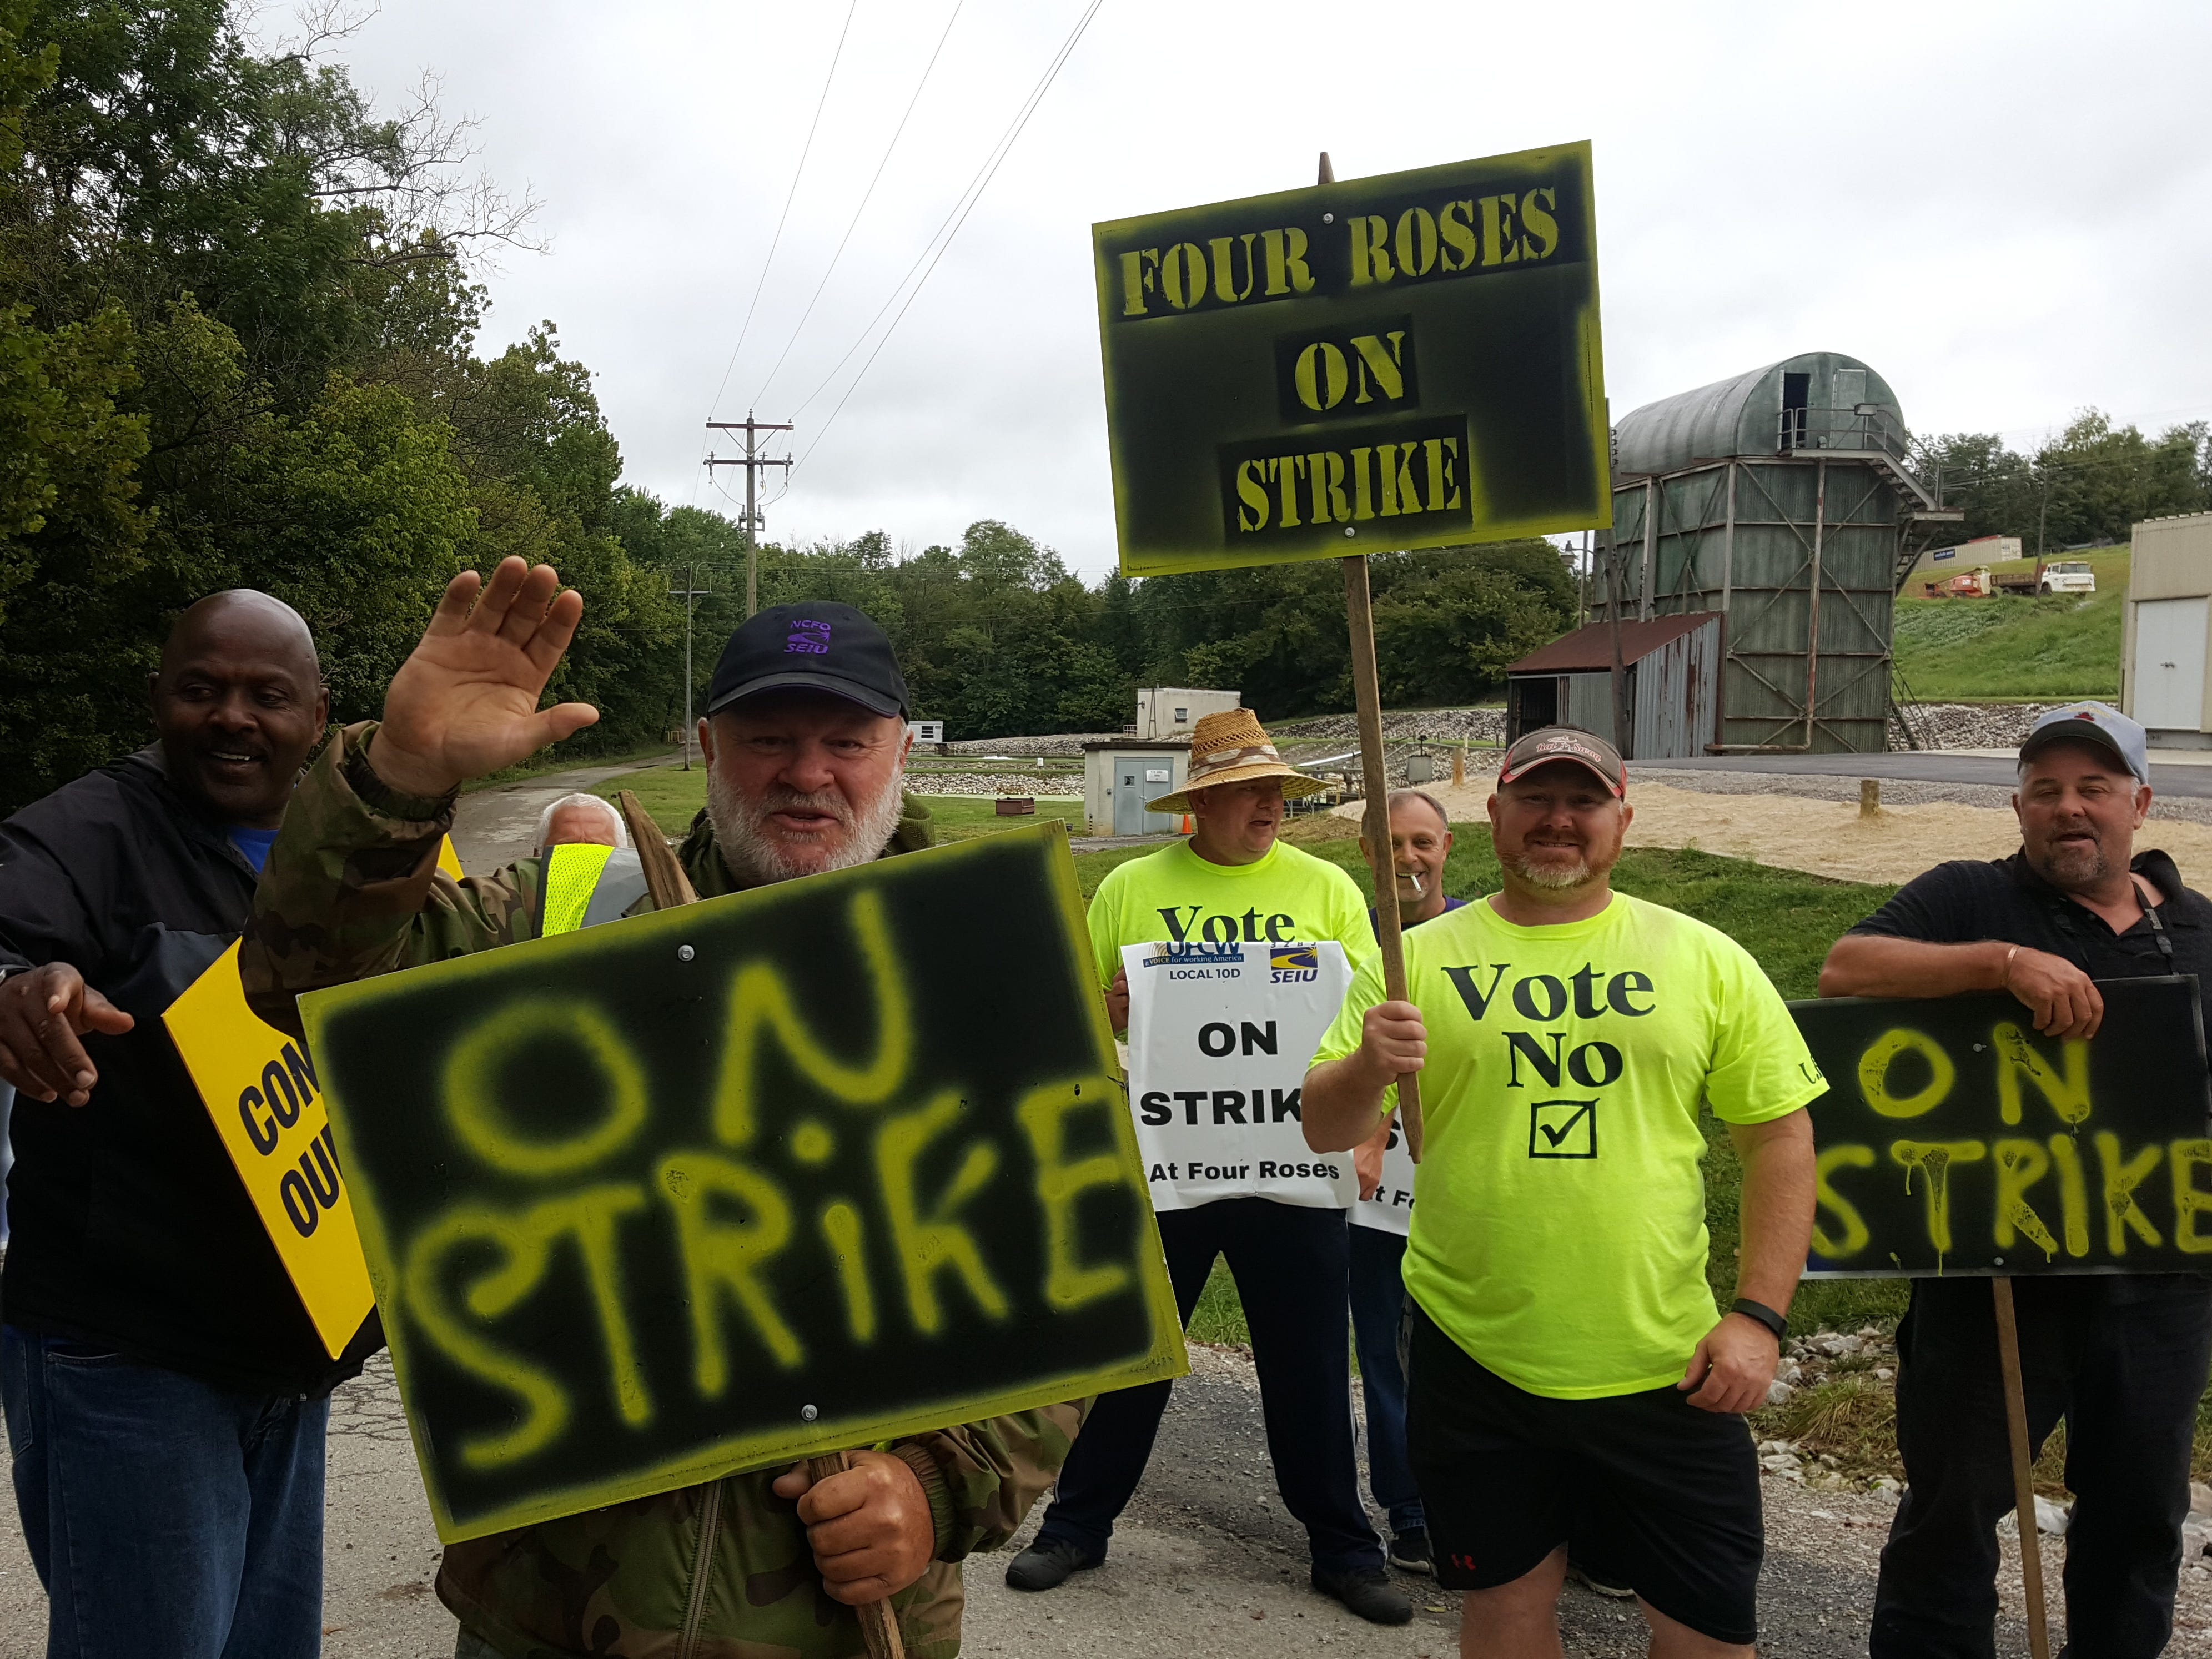 Union workers strike at Four Roses distillery just before bourbon fest